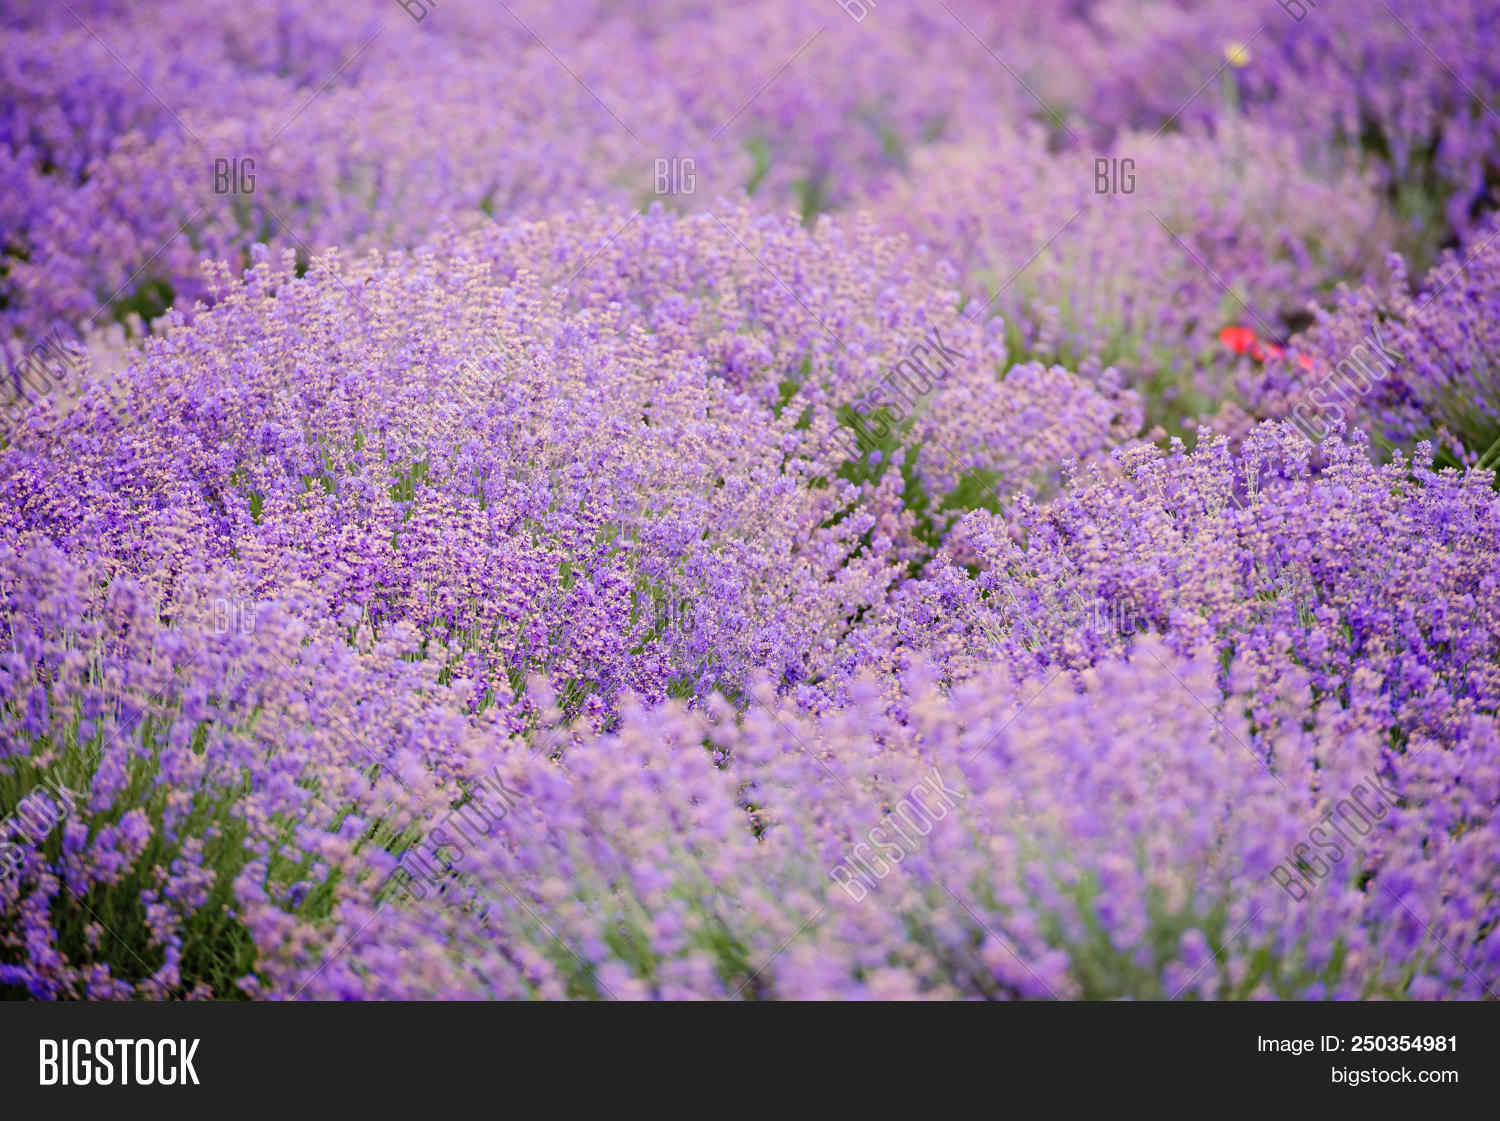 Soft focus flowers image photo free trial bigstock soft focus flowers beautiful lavender flowers blooming izmirmasajfo